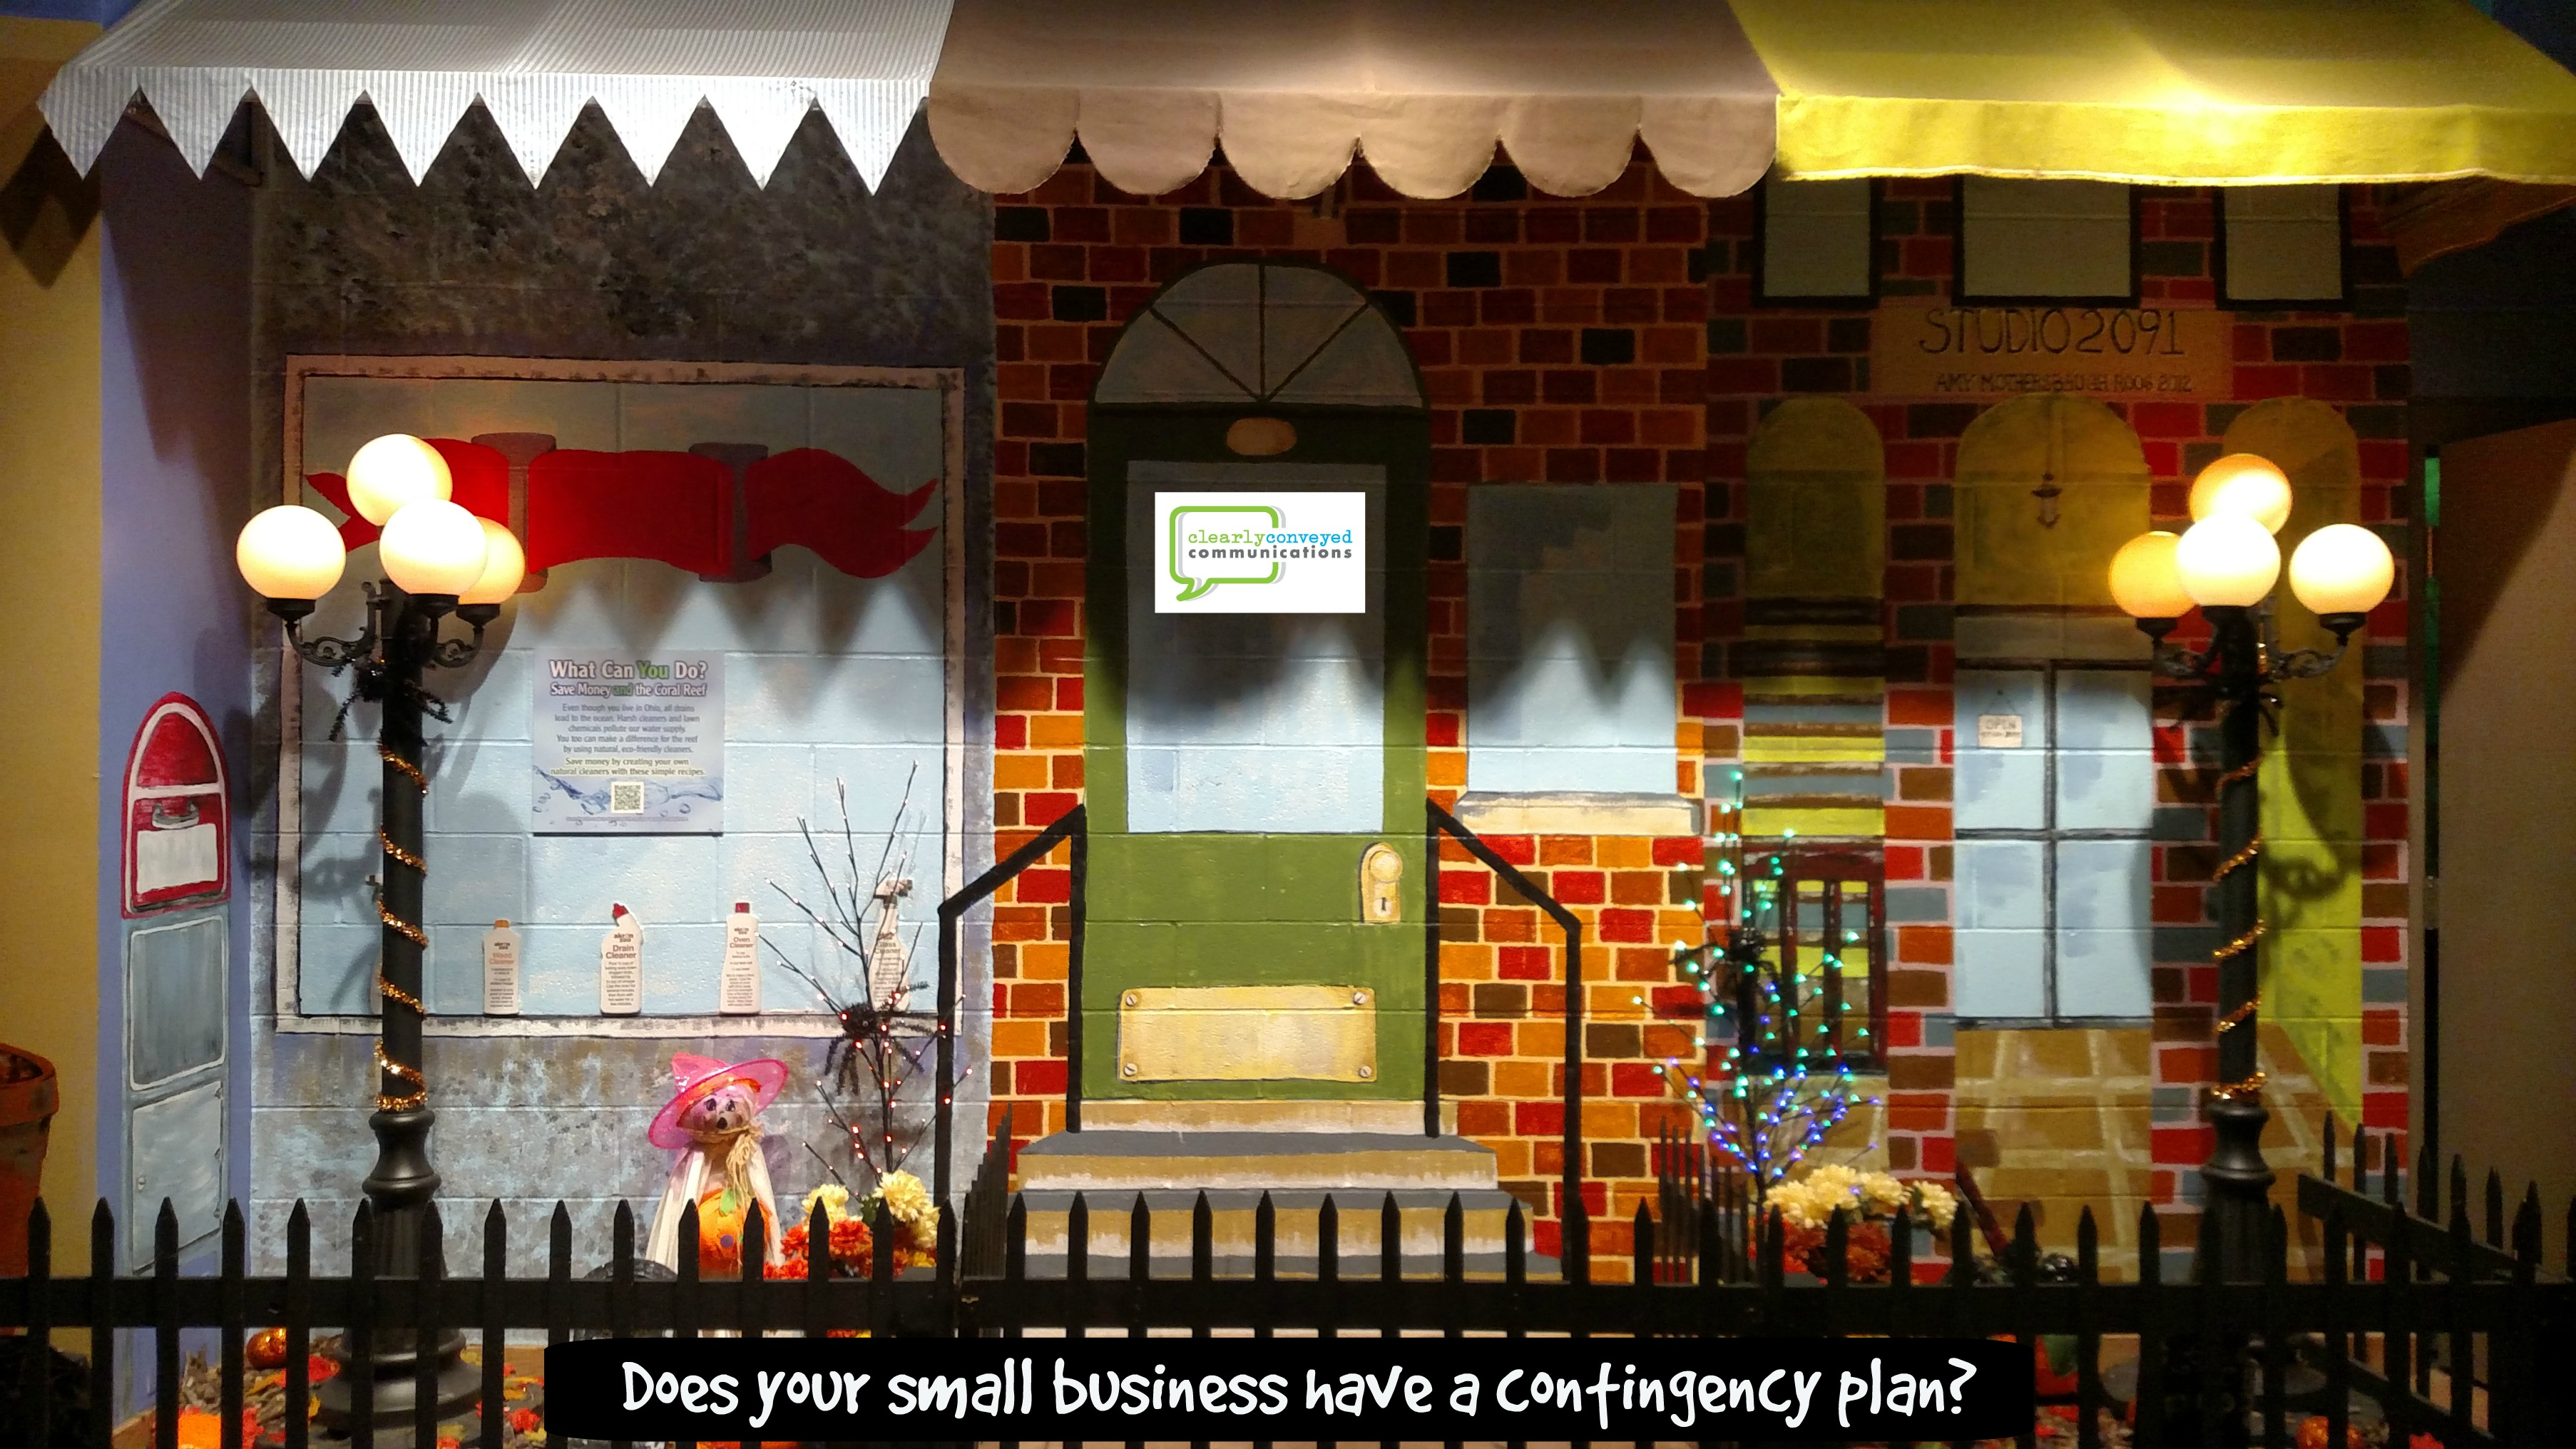 Does your small business have a contingency plan?